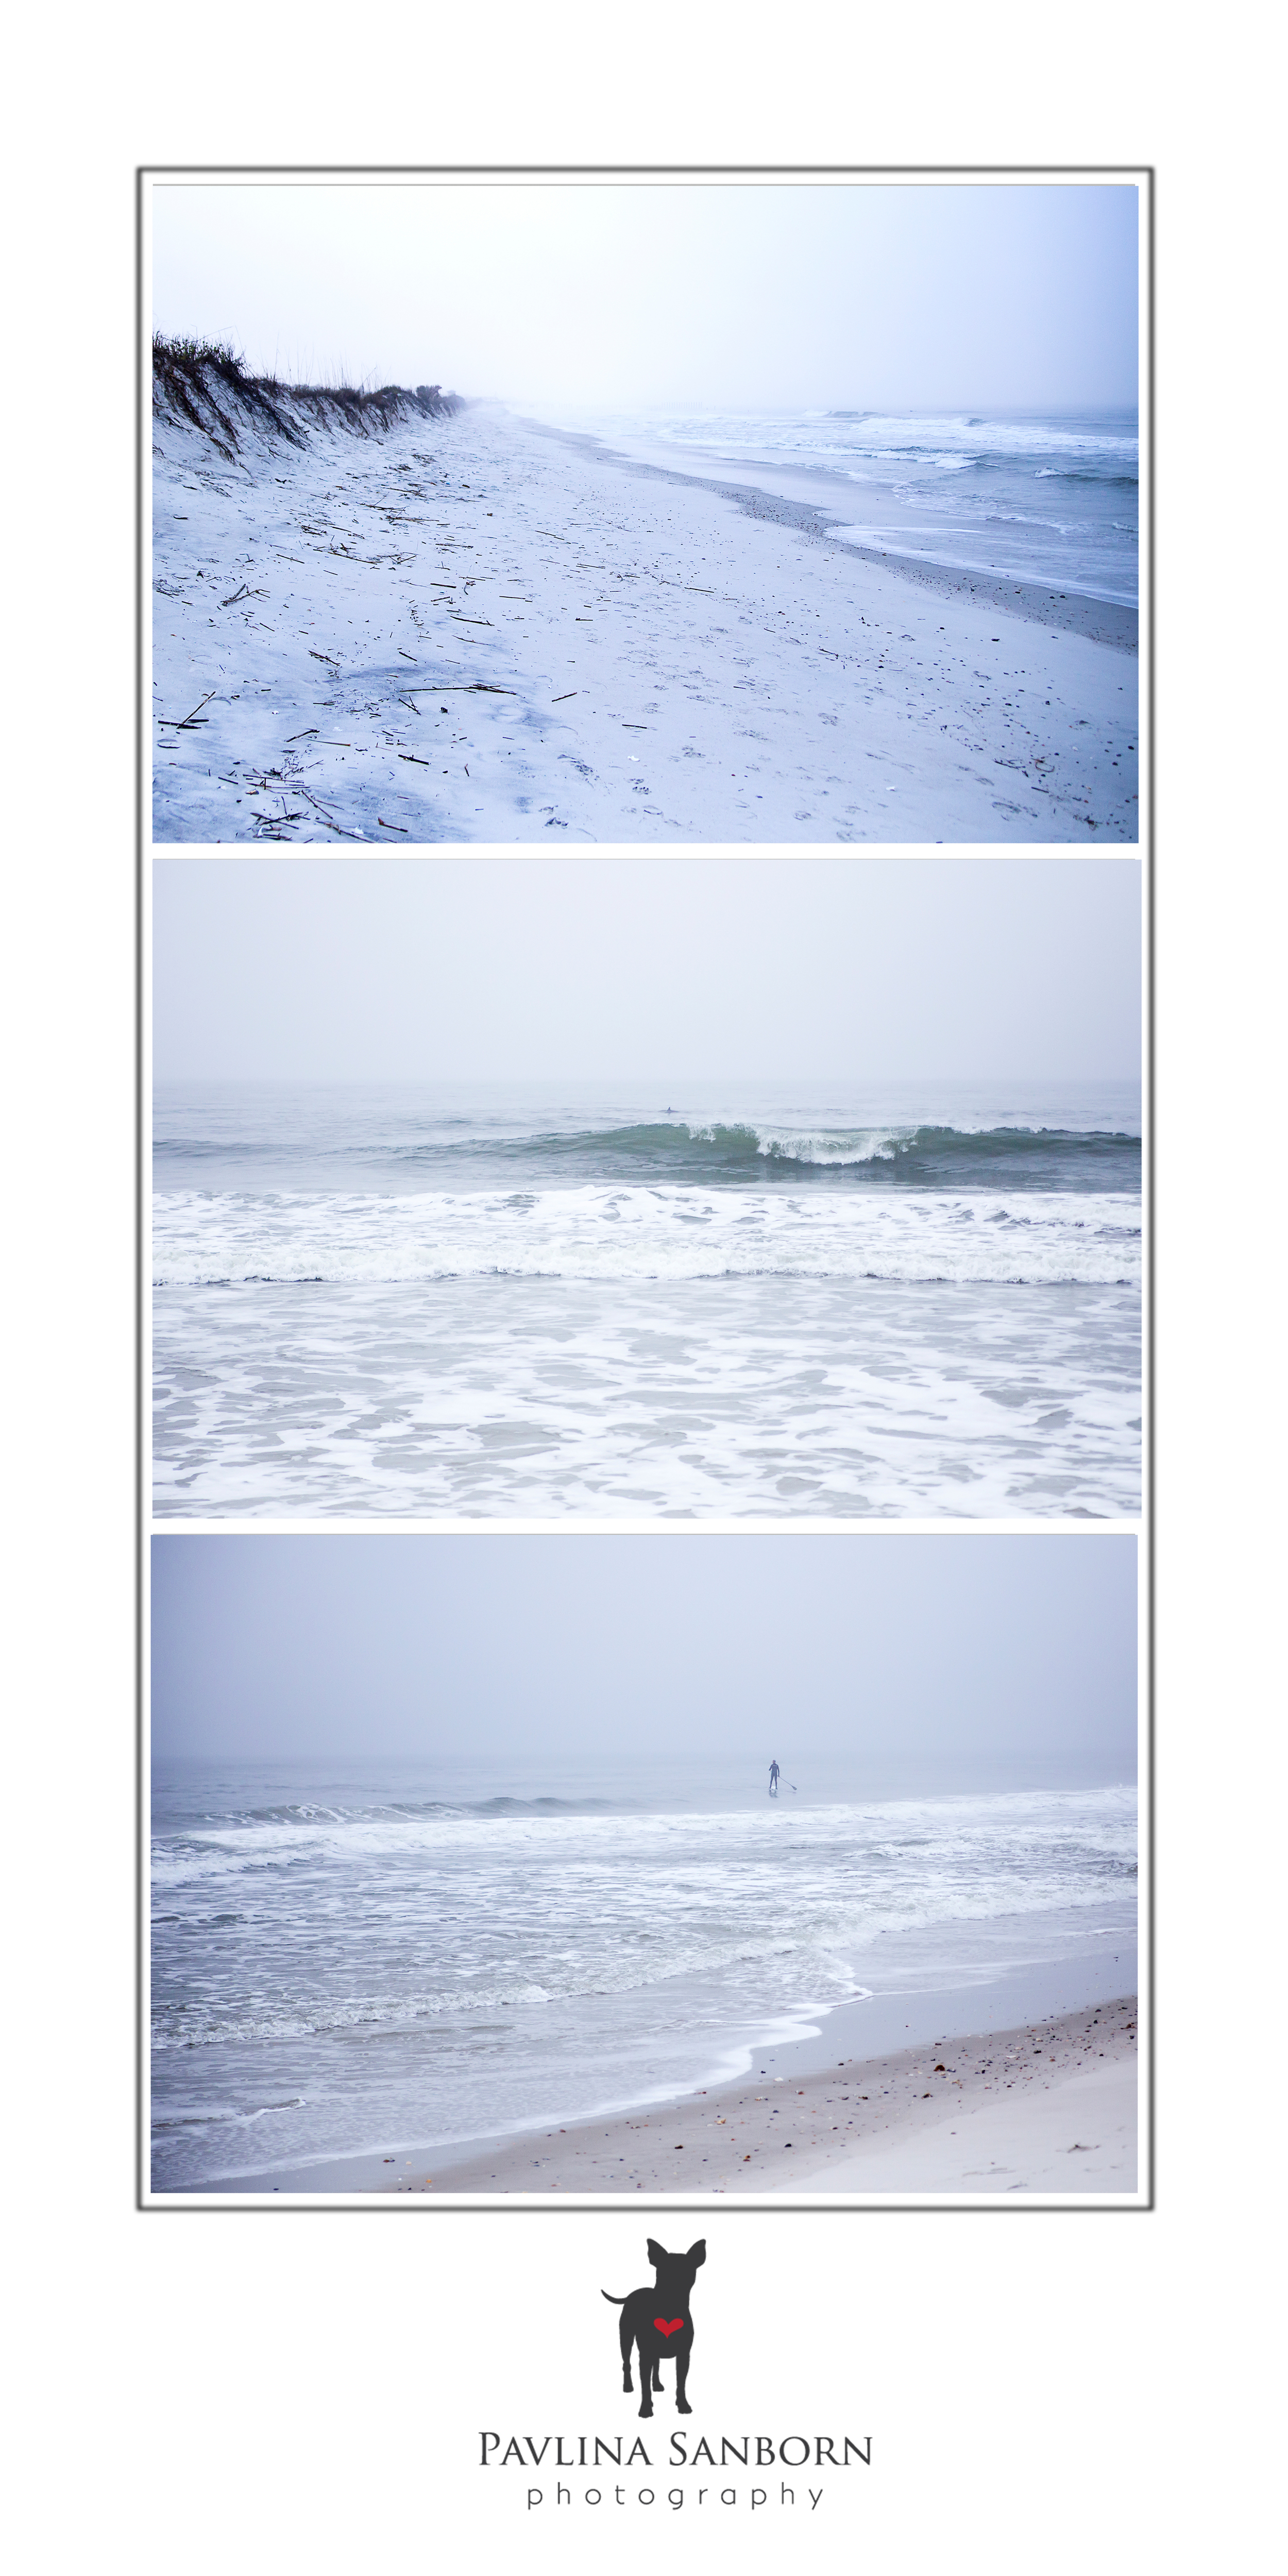 The morning foggy, cold, and beautiful beach. In the middle photo you can see a dolphin. There were schools of dolphins playing close to the beach...